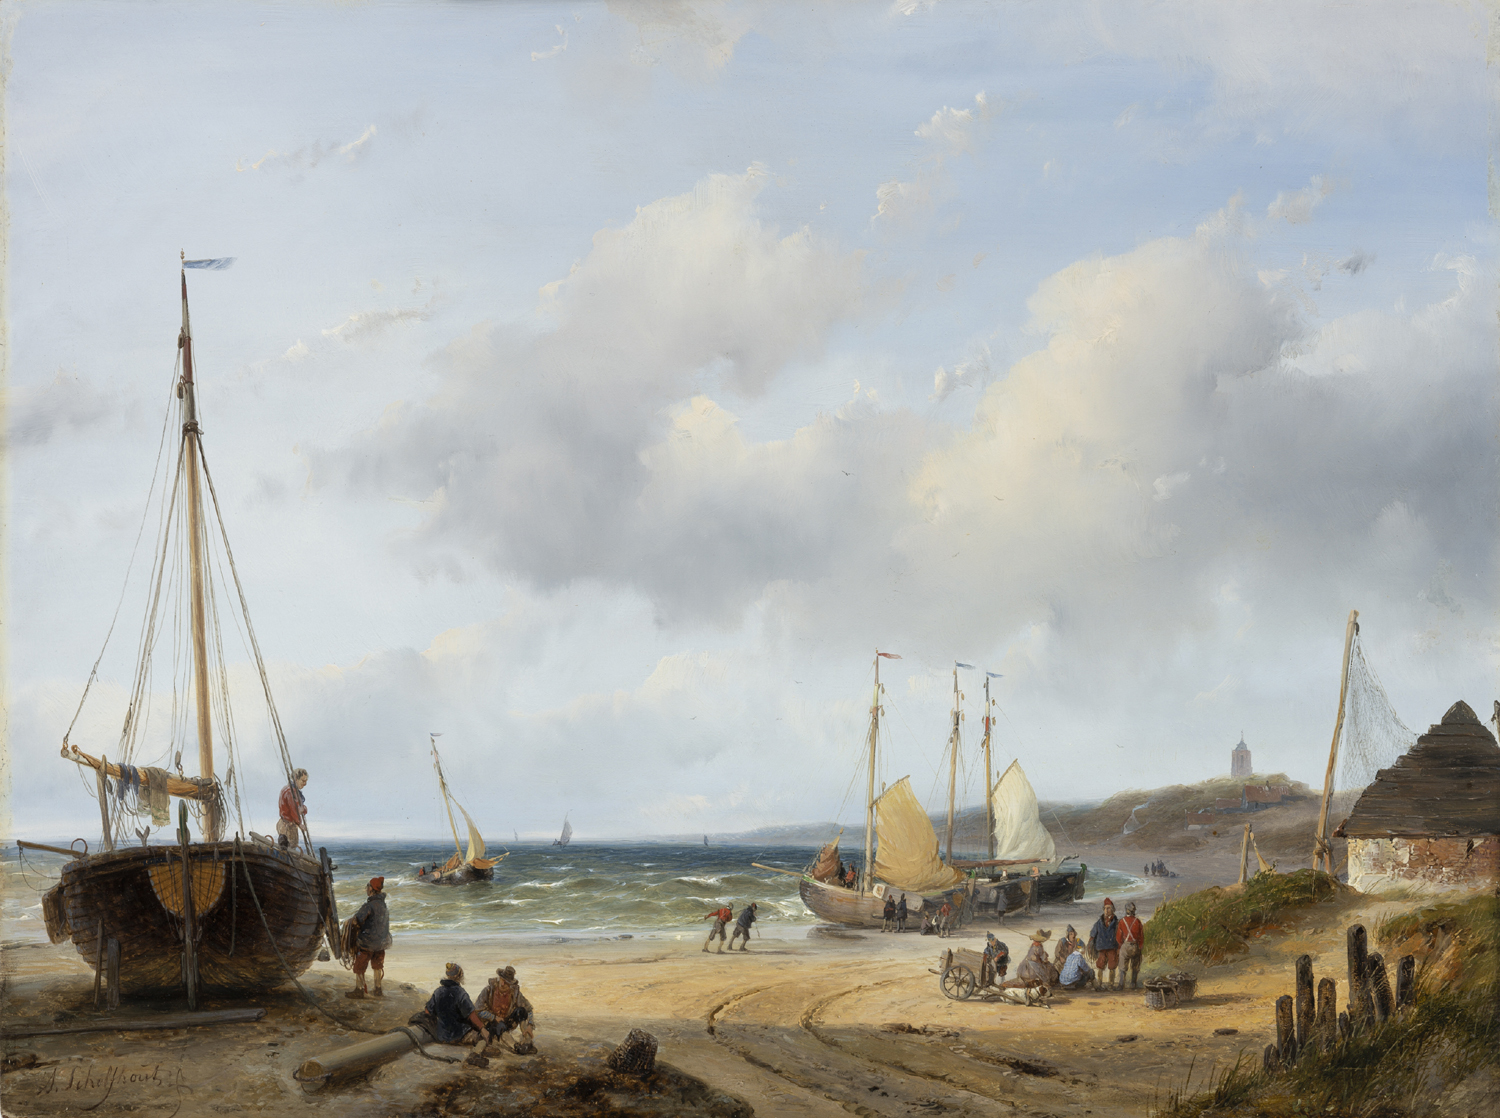 Andreas Schelfhout | A beach scene with fishing boats and figures| Kunsthandel Bies | Bies Gallery